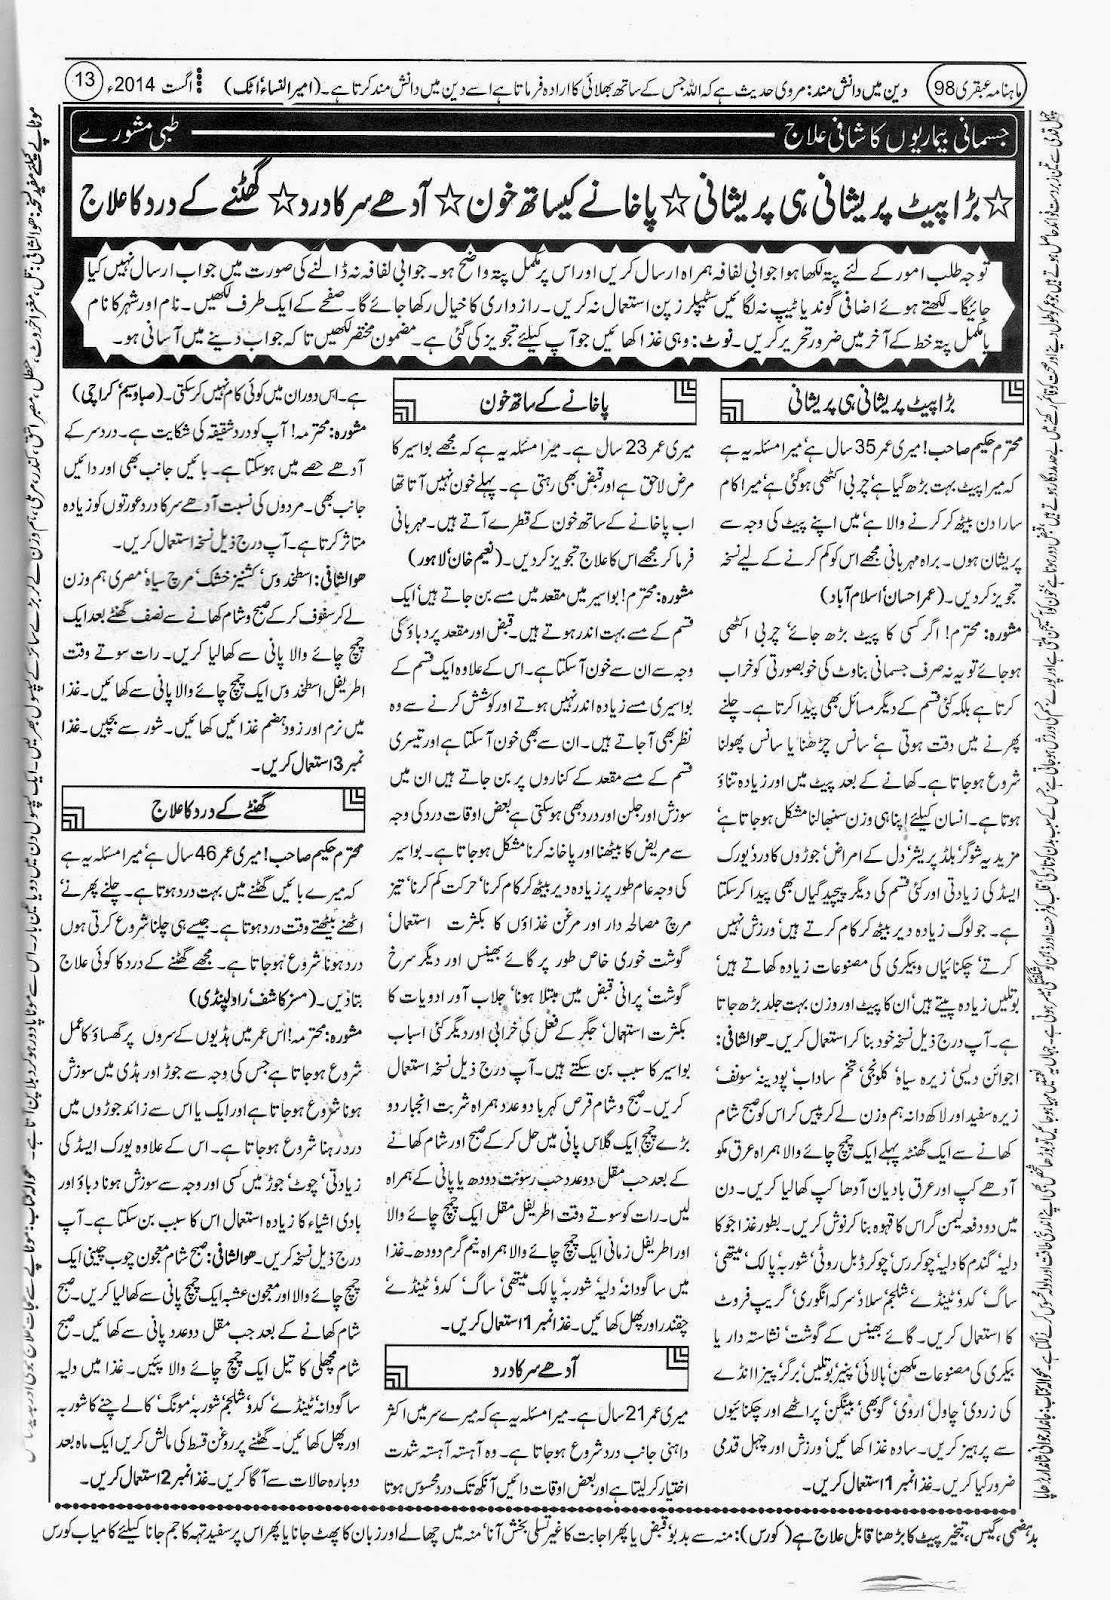 Ubqari August 2014 Page 13